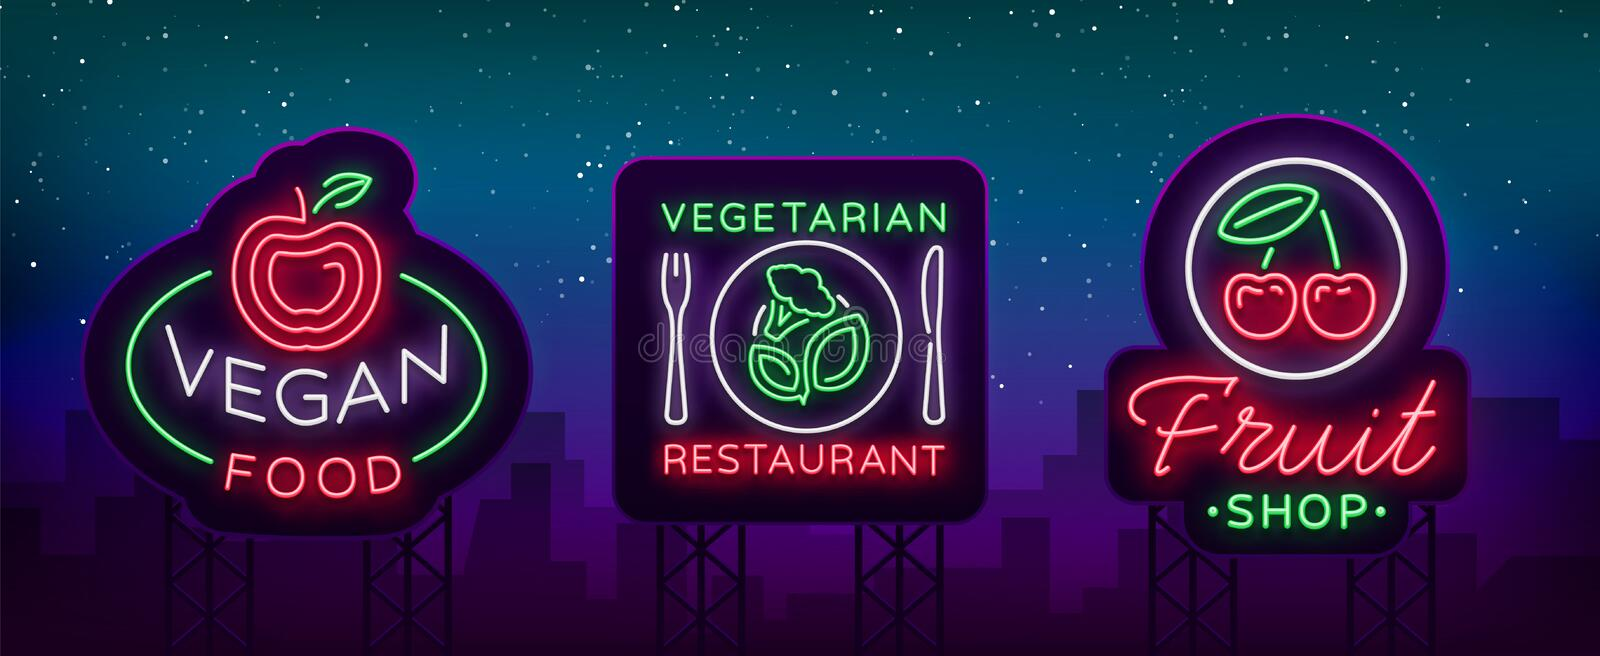 Vegan set of logos in a neon style. Collection of neon signs, a bright luminous sign, neon advertising on the theme of stock illustration